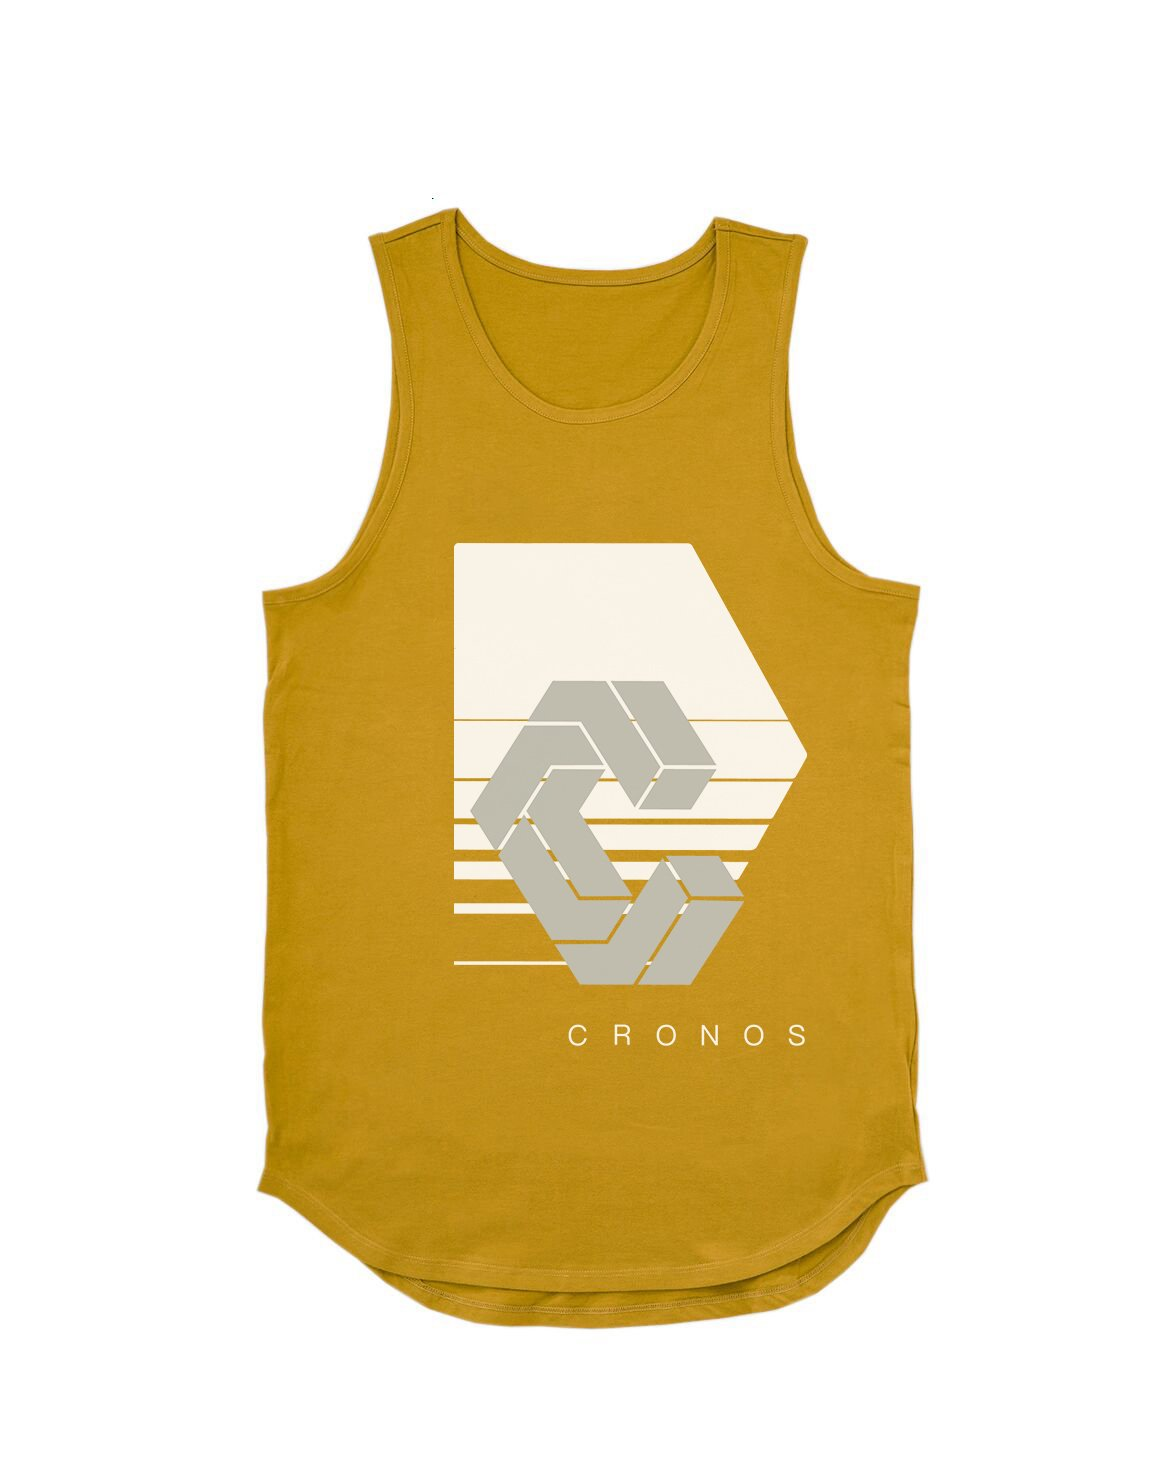 <img class='new_mark_img1' src='https://img.shop-pro.jp/img/new/icons1.gif' style='border:none;display:inline;margin:0px;padding:0px;width:auto;' />CRONOS REFLECTION LOGO TANK TOP【YELLOW】